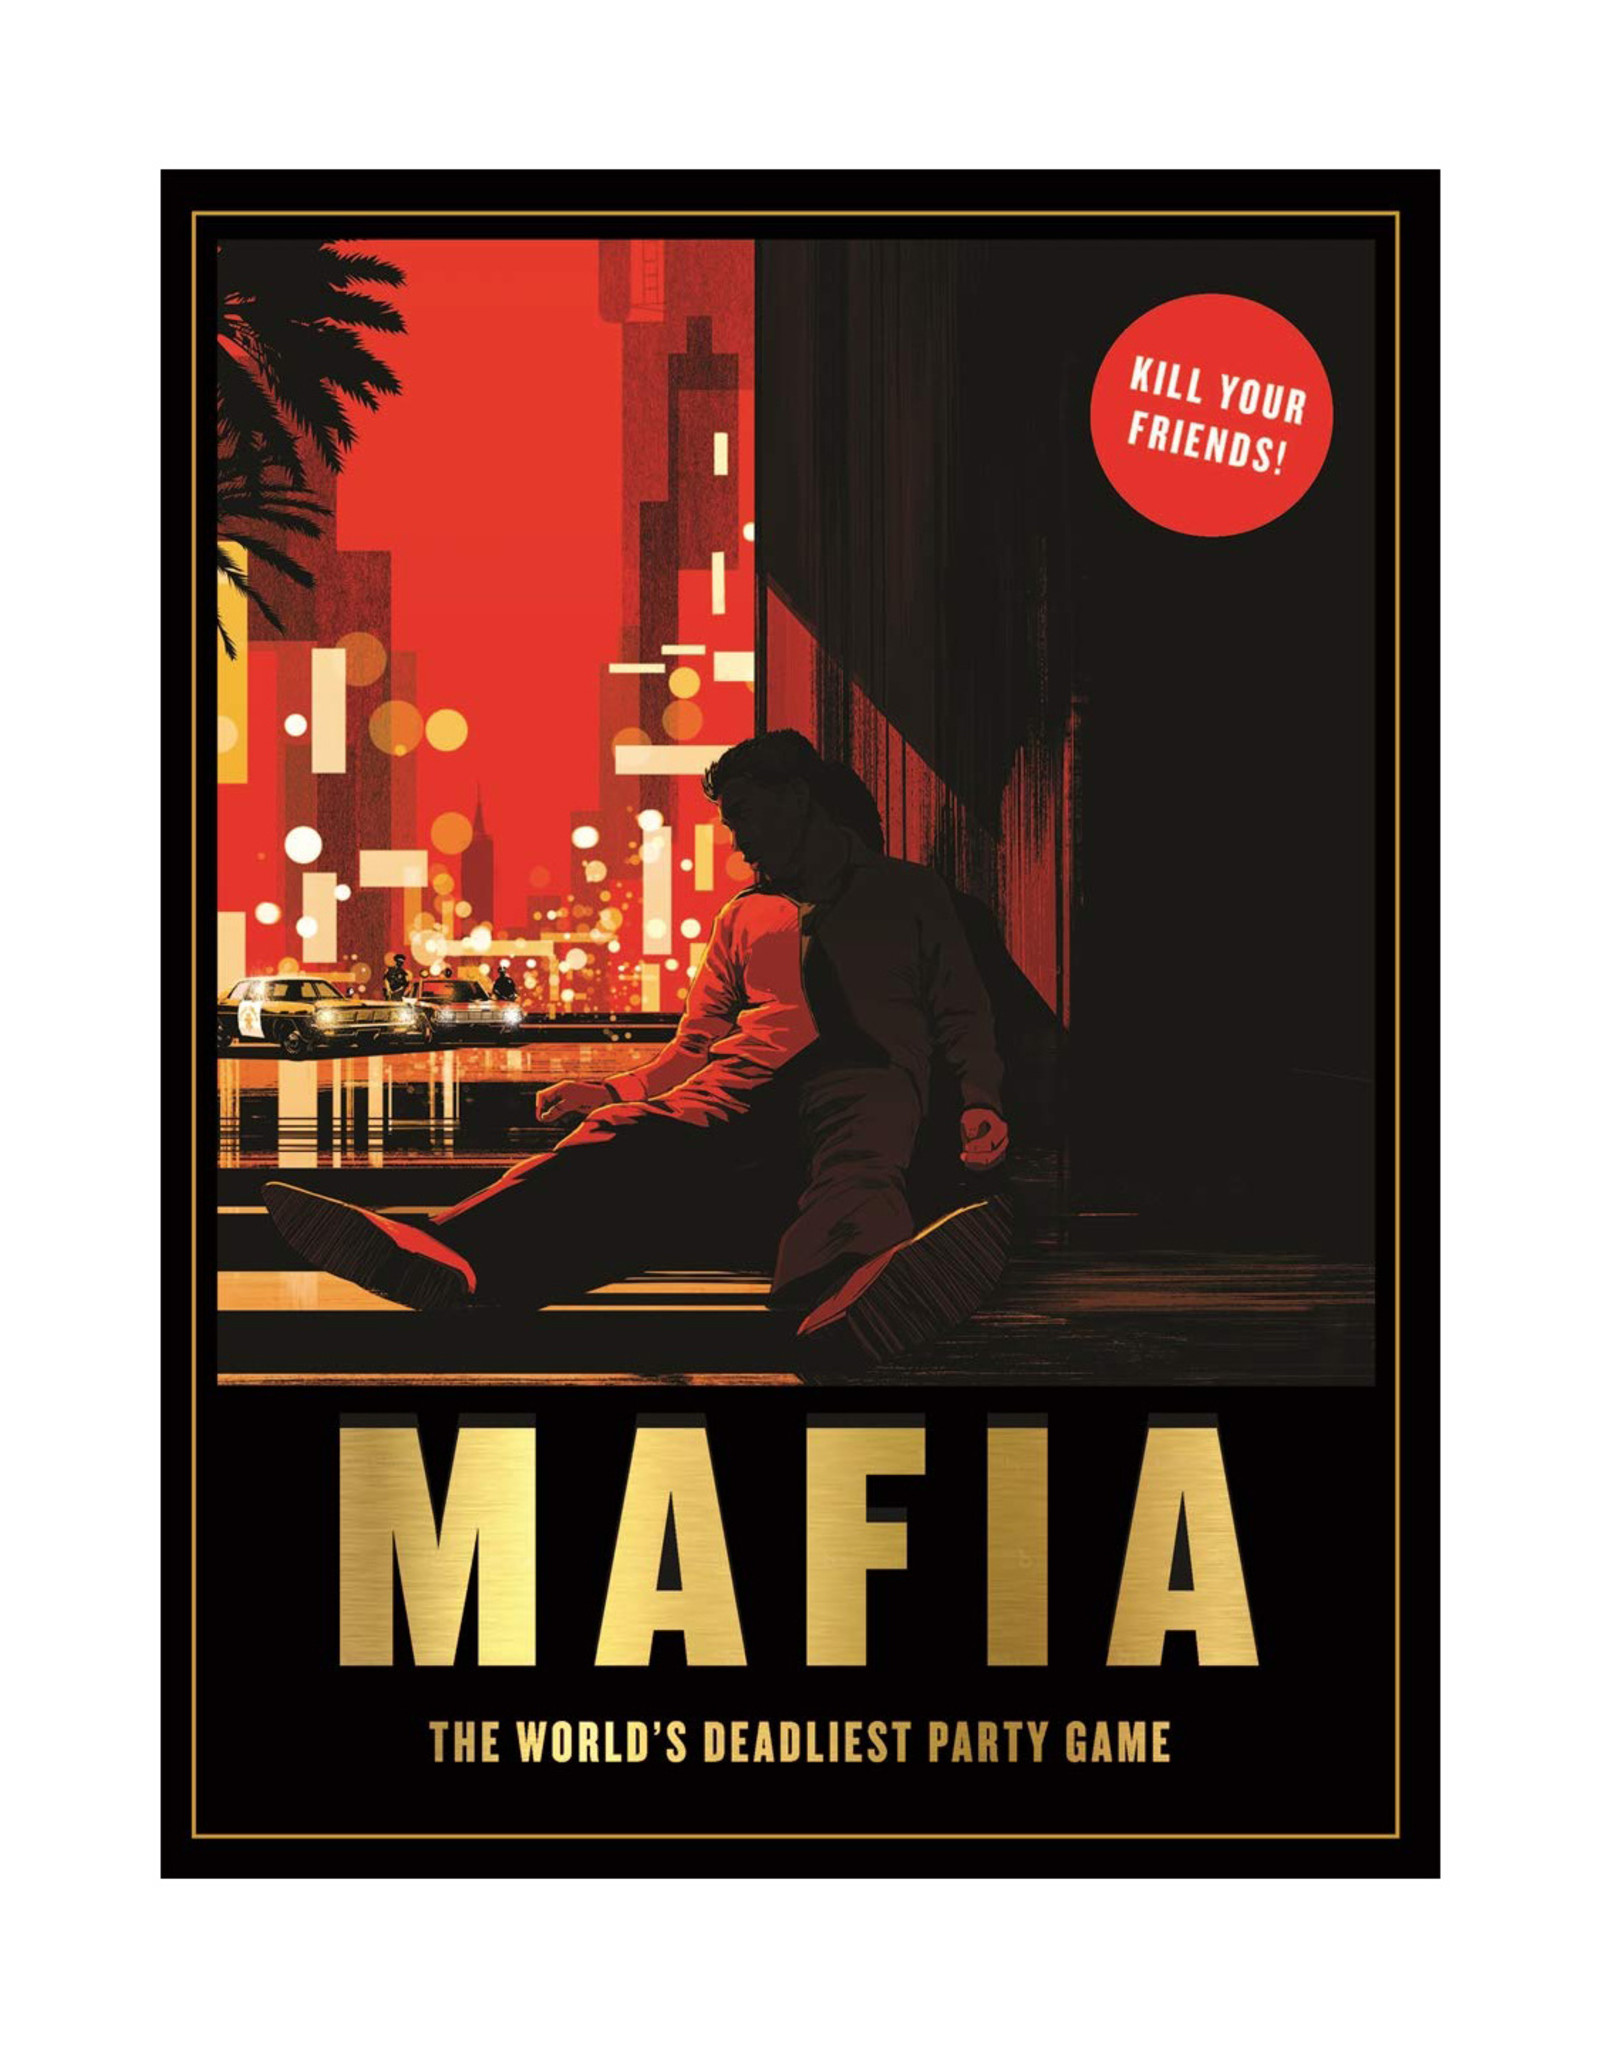 Mafia: The World's Deadliest Party Game